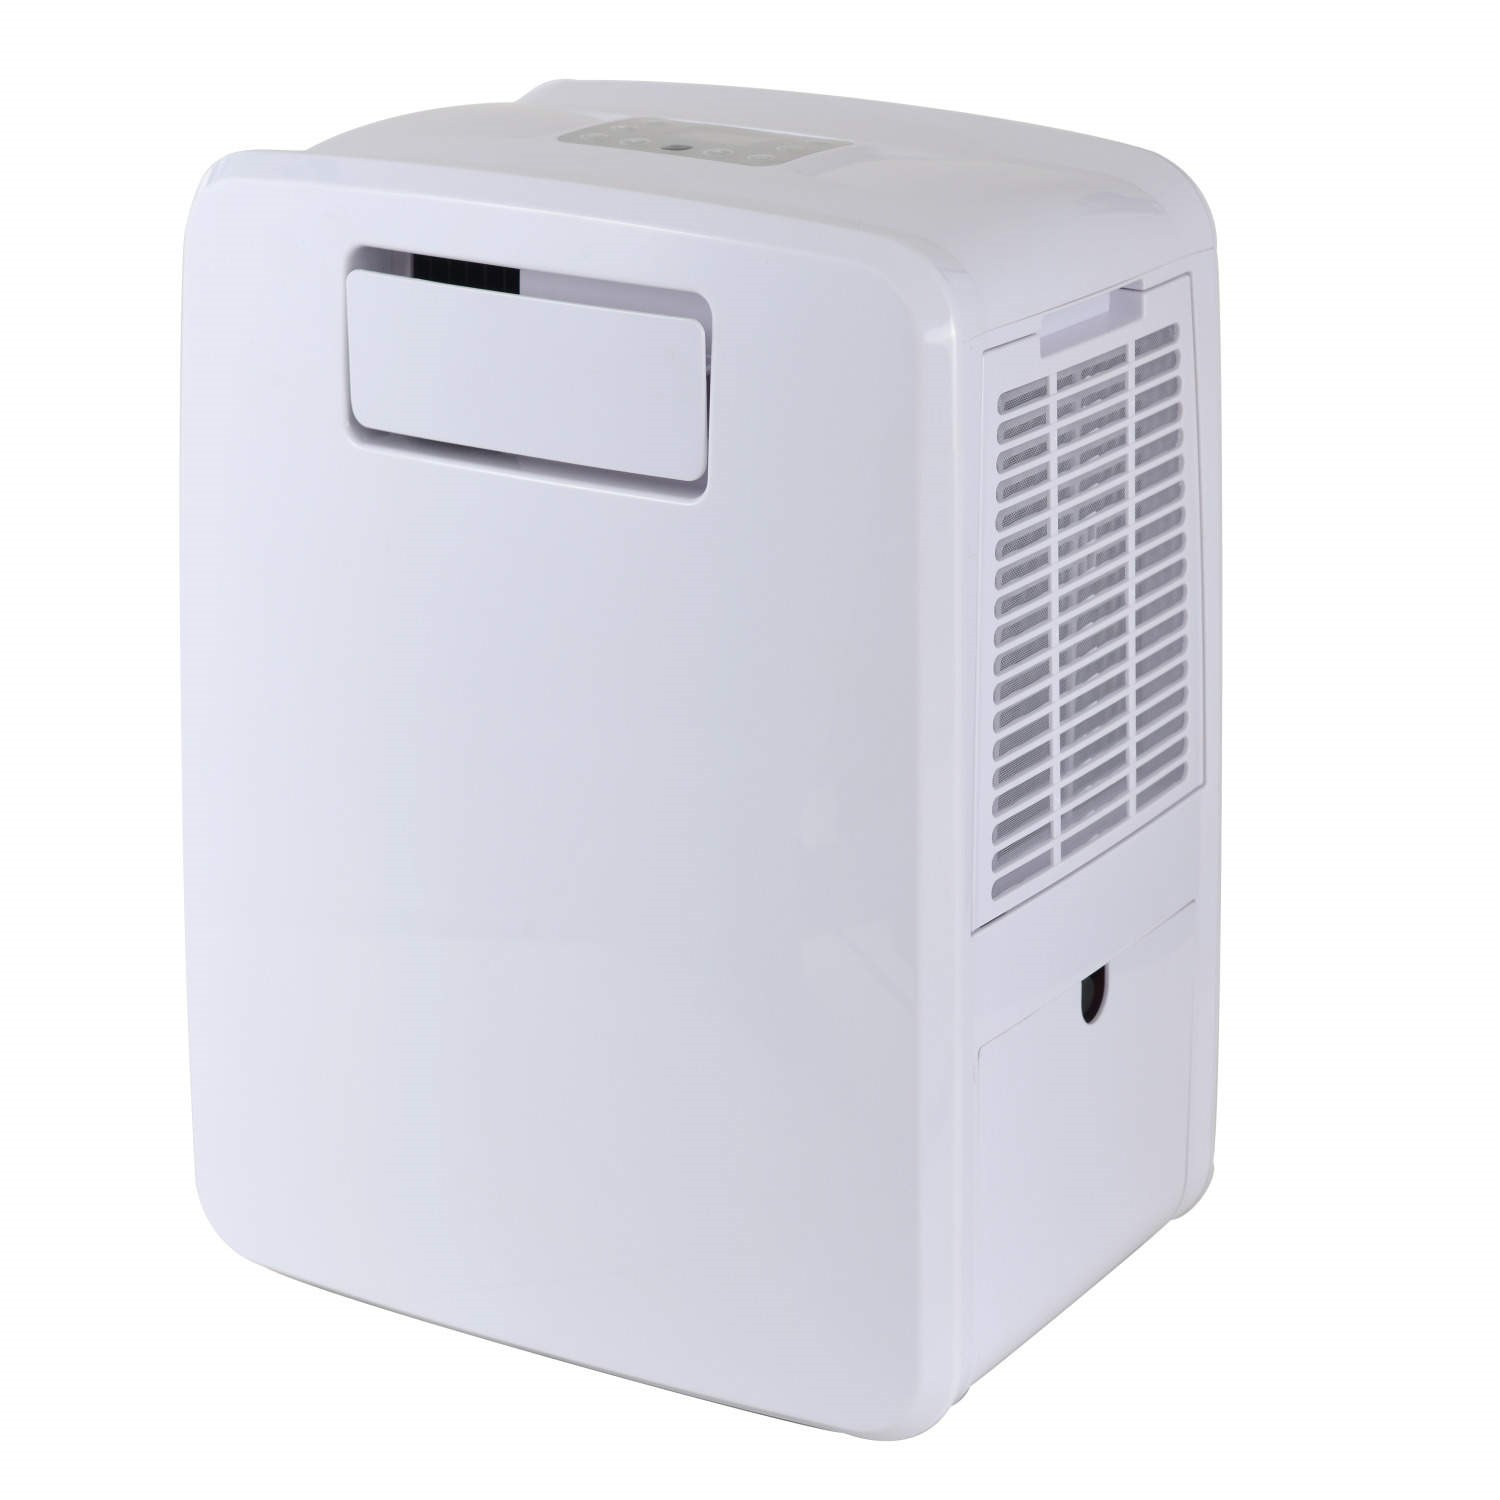 Grade A2 Smallest Air Conditioner Ideal For Very Small